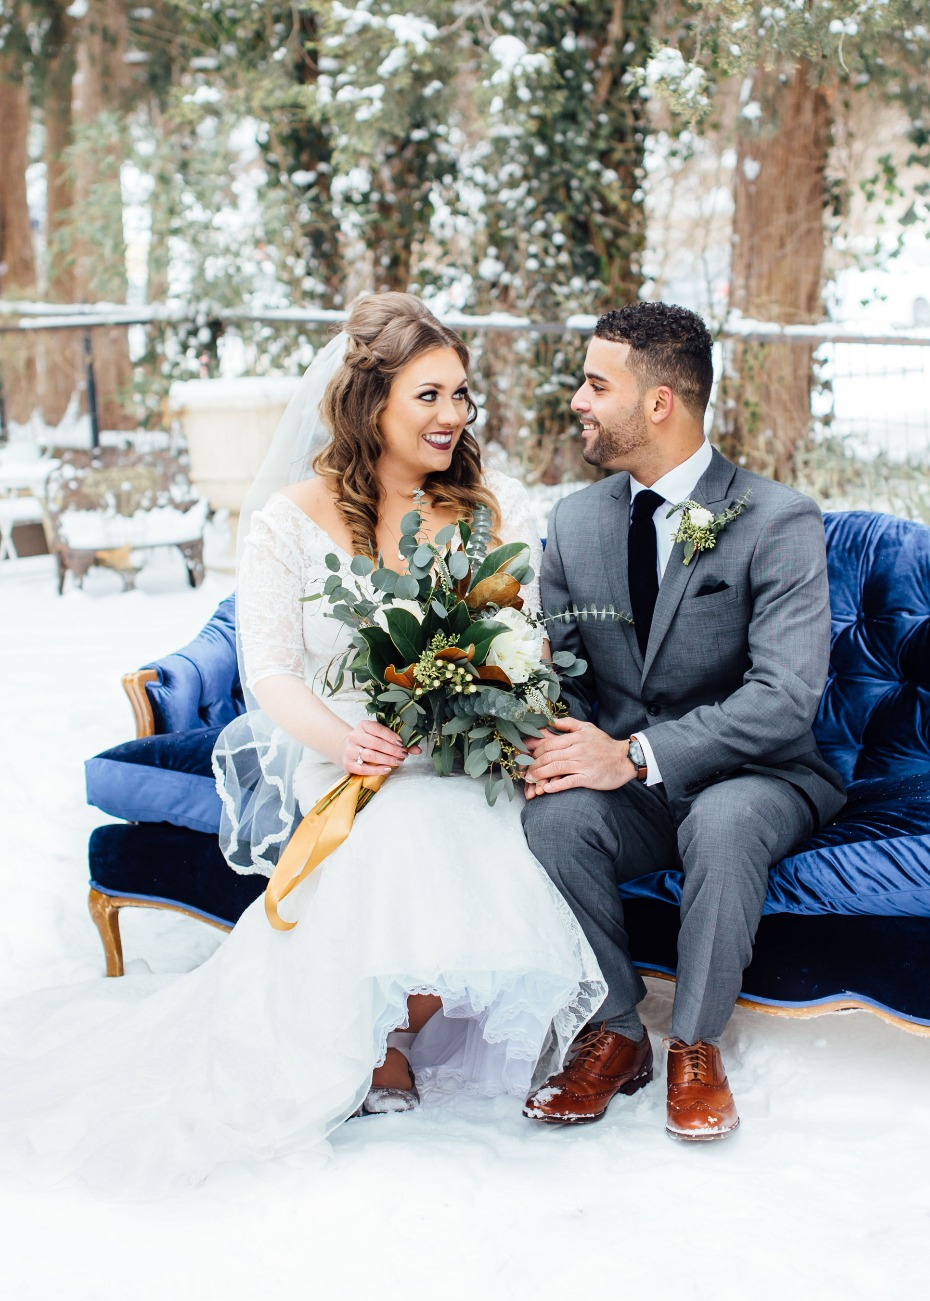 Beautiful outdoor winter wedding